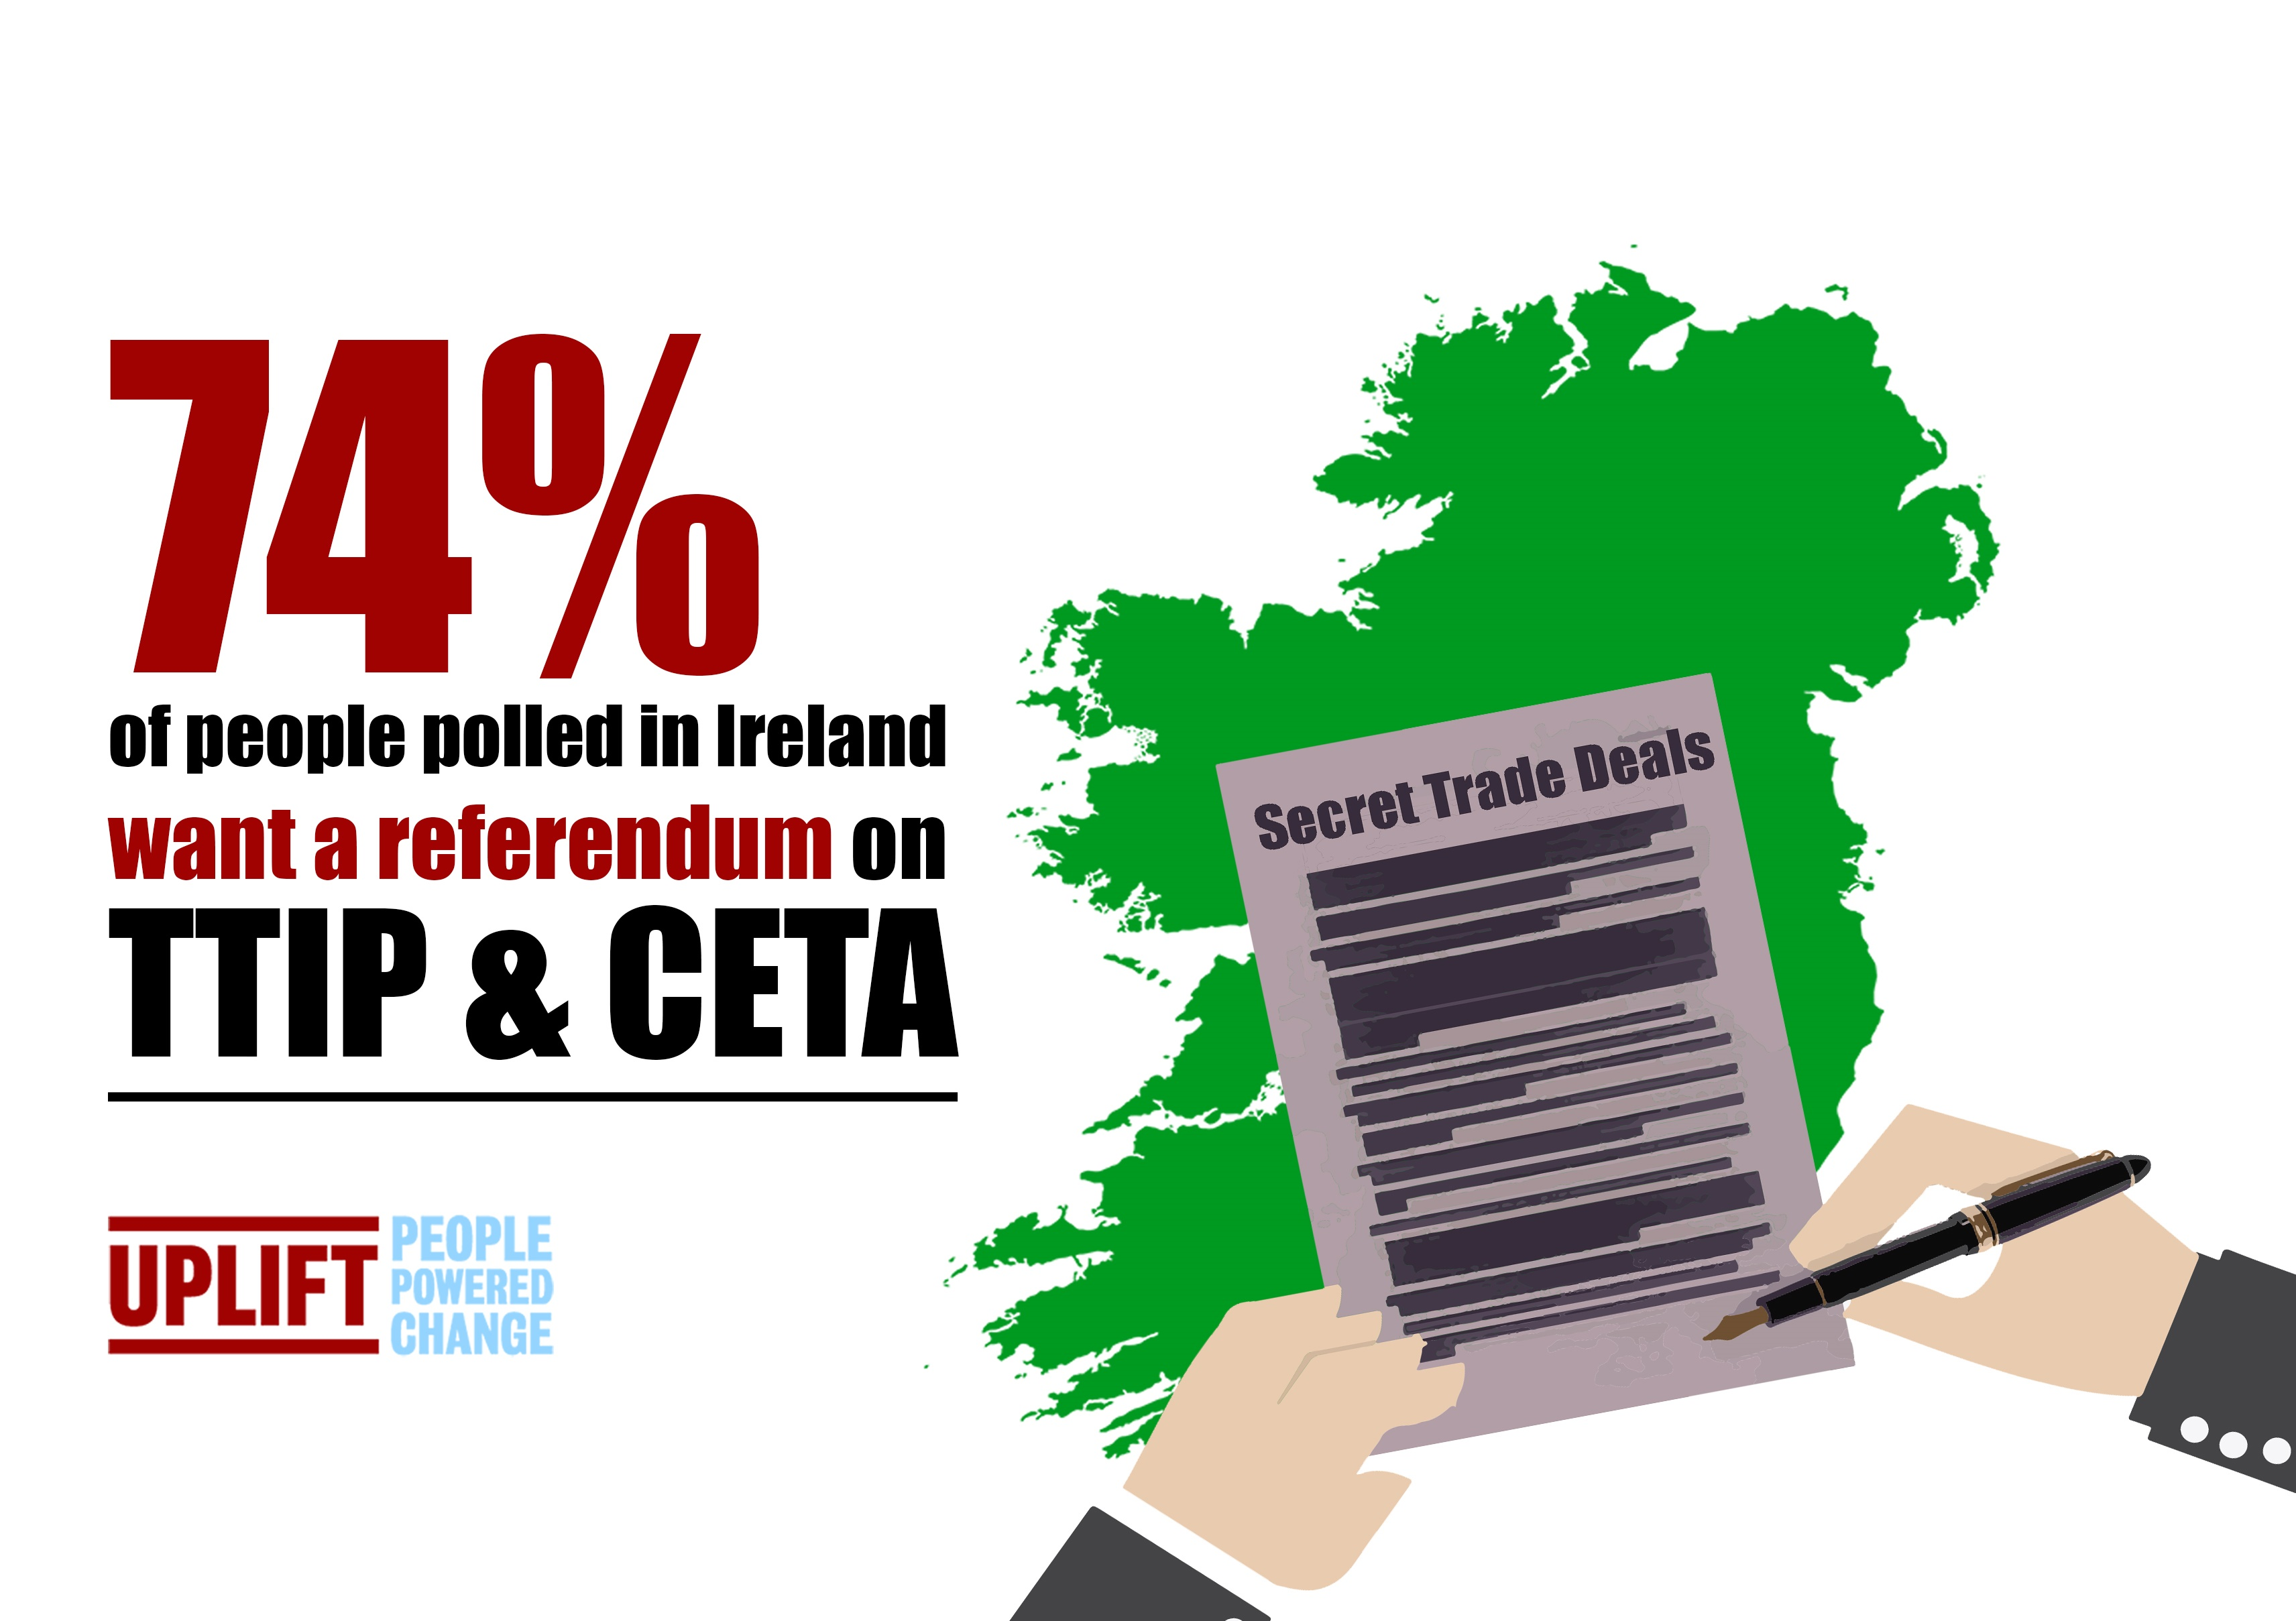 745 of people polled want a referendum on TTIP & CETA